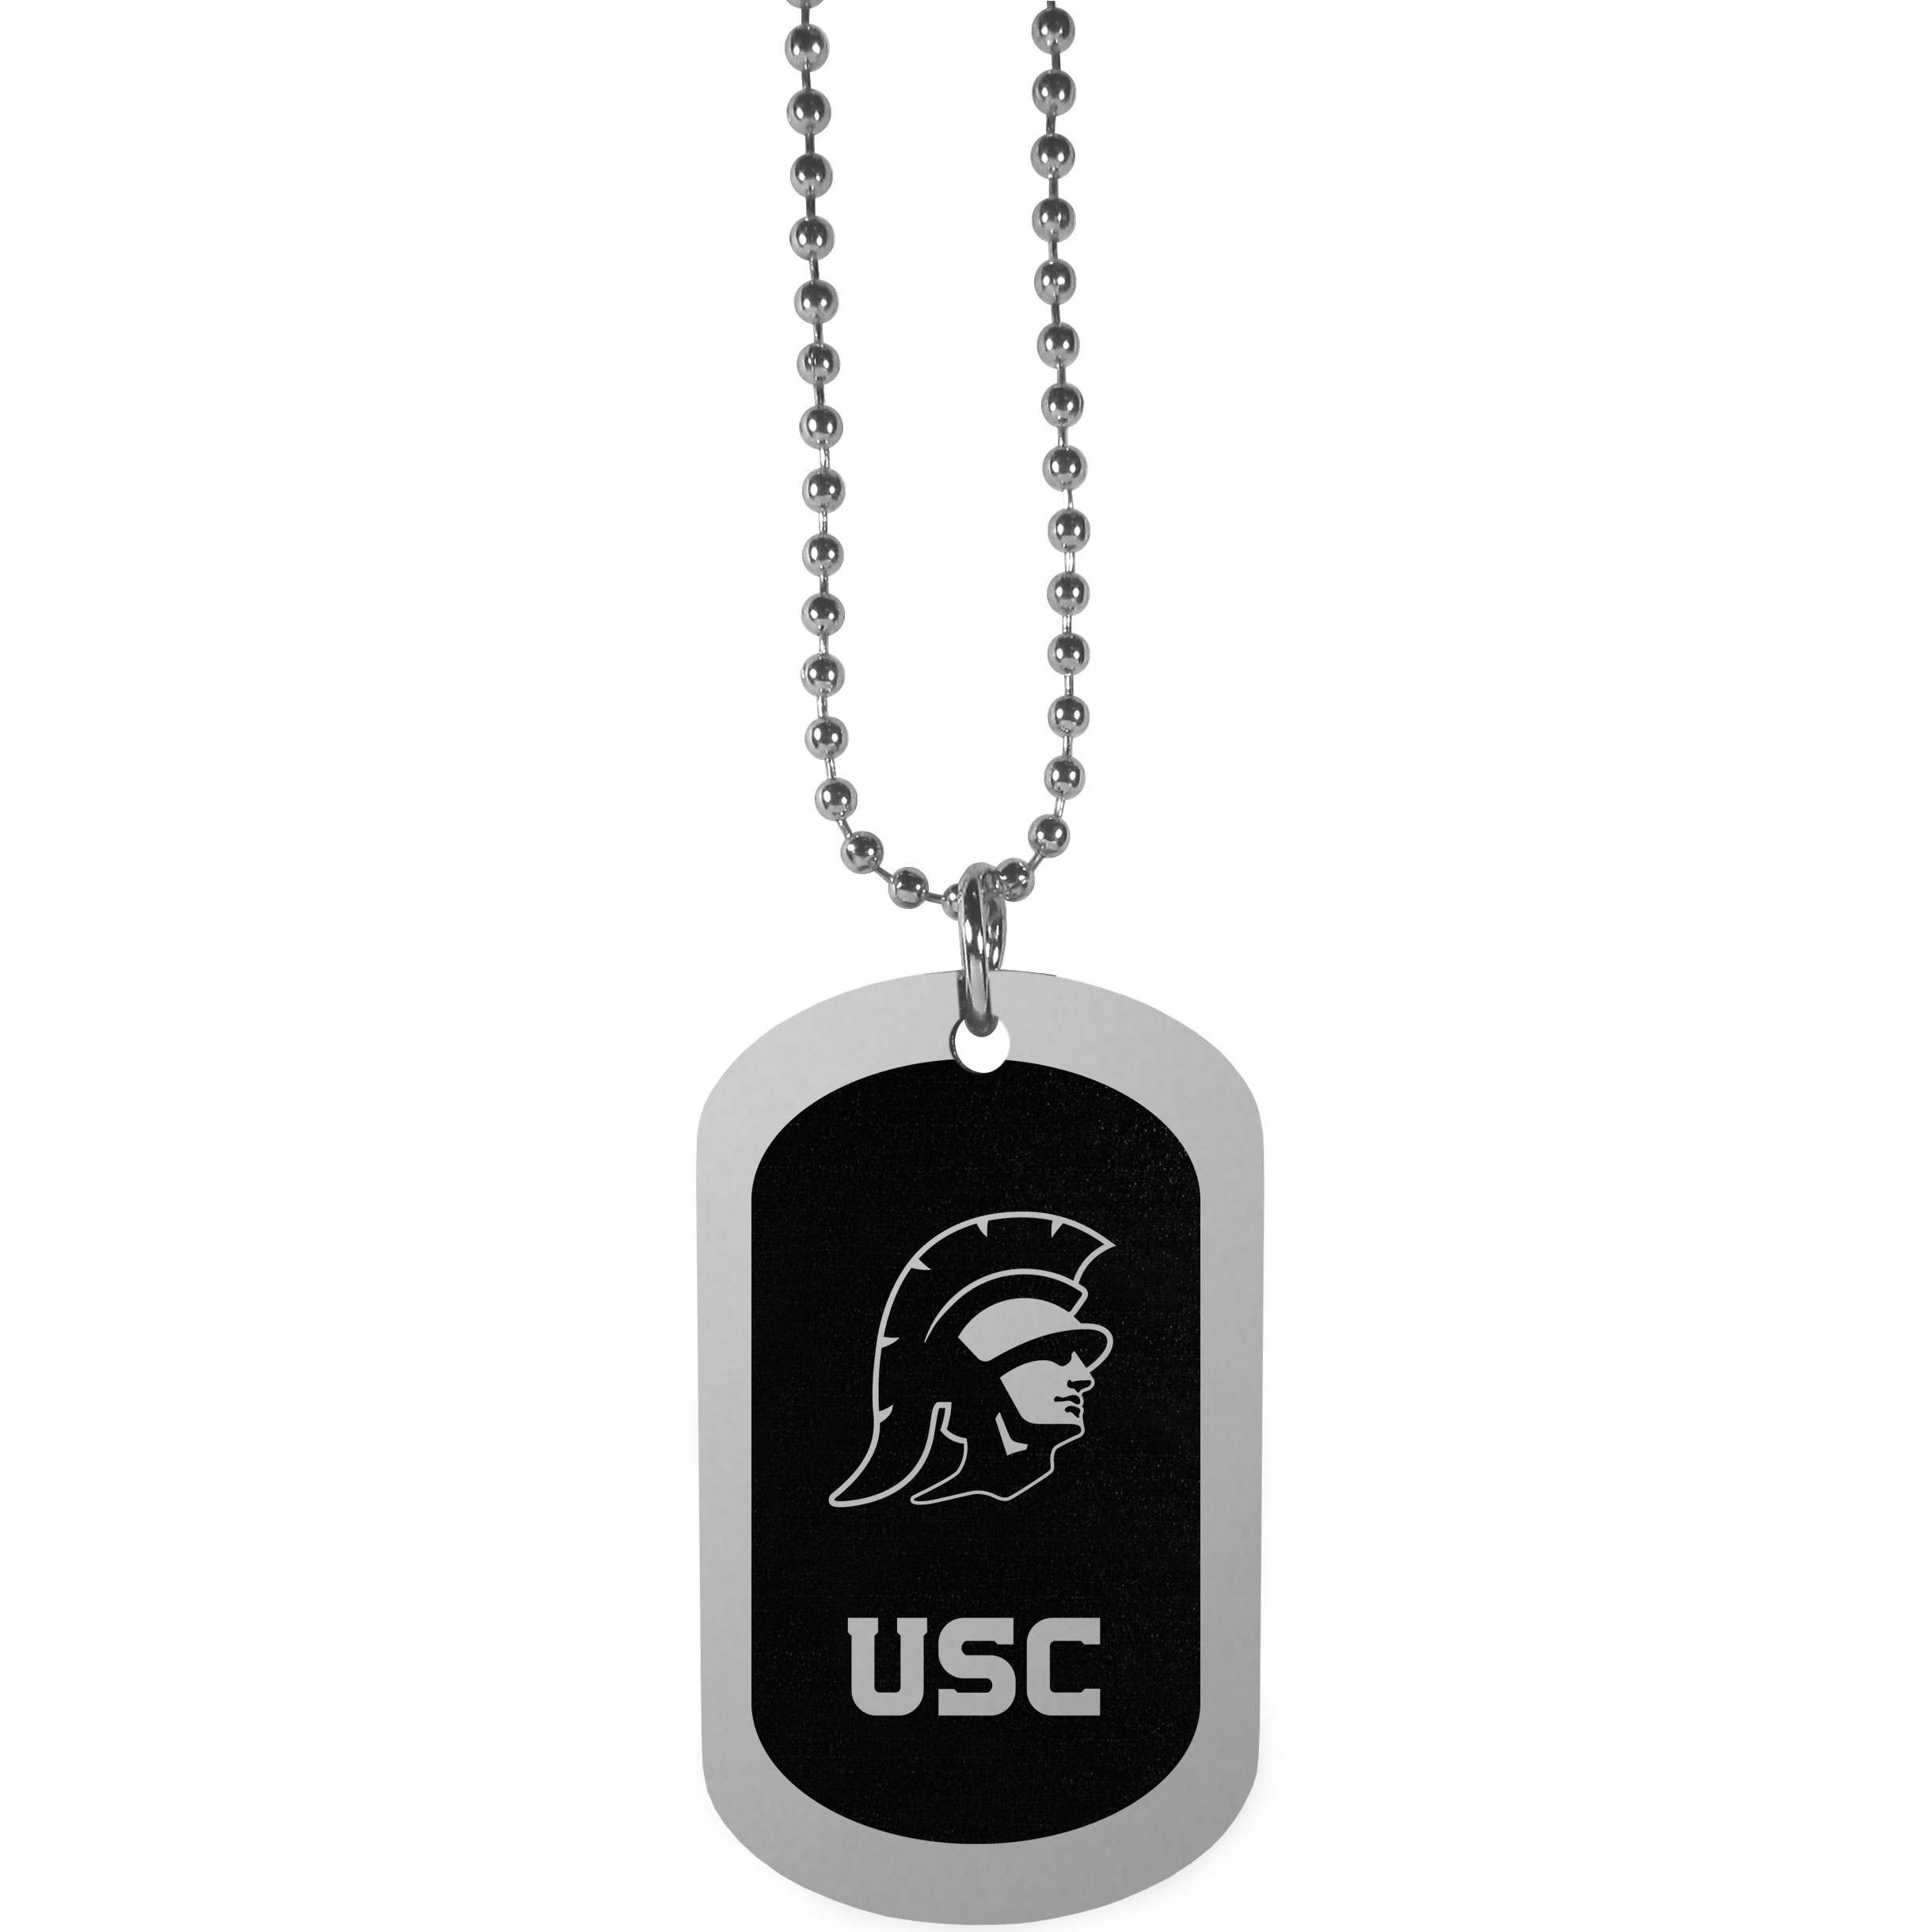 USC Trojans Chrome Tag Necklace - Dog tag necklaces are a fashion statement that is here to stay. The sporty version of the classic tag features a black printed over a high polish tag to create a bold and sporty look. The tag comes on a 26 inch ball chain with a ball and joint clasp. Any USC Trojans would be proud to wear this attractive fashion accessory.